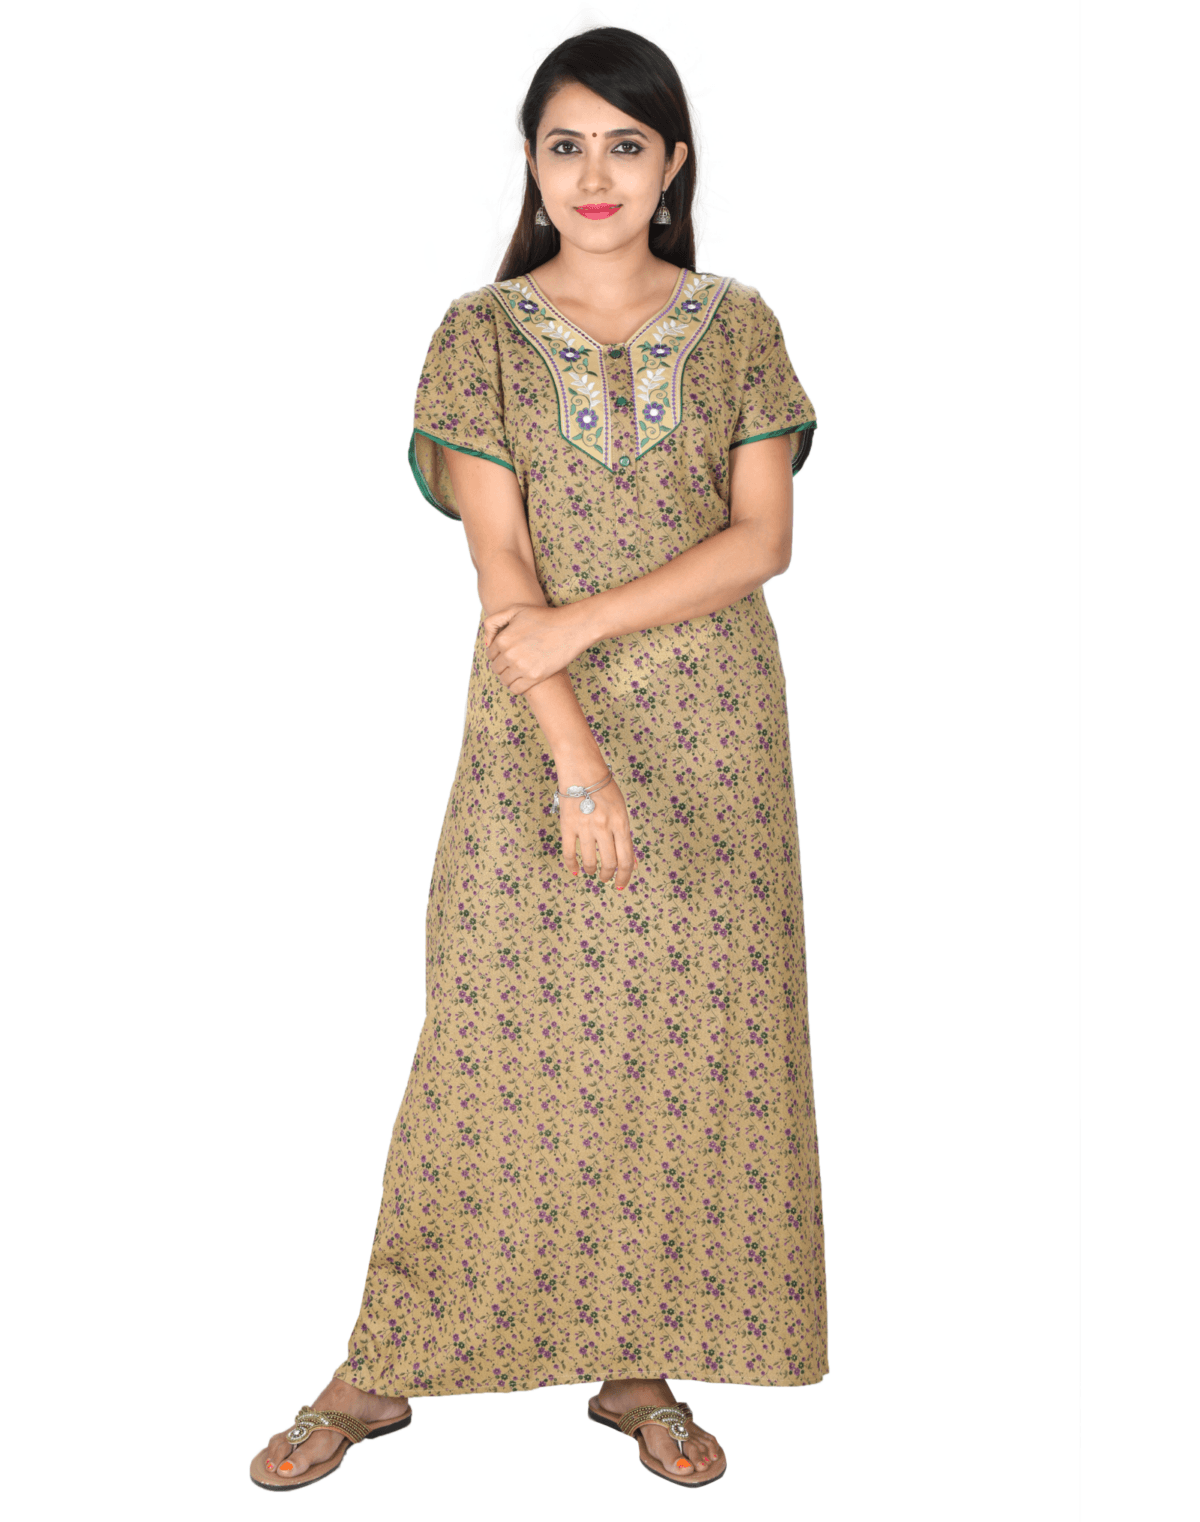 Womens Full Length Alpine Nightwear - Front Button - Regular Fit - Neck Embroidered - Nighty House